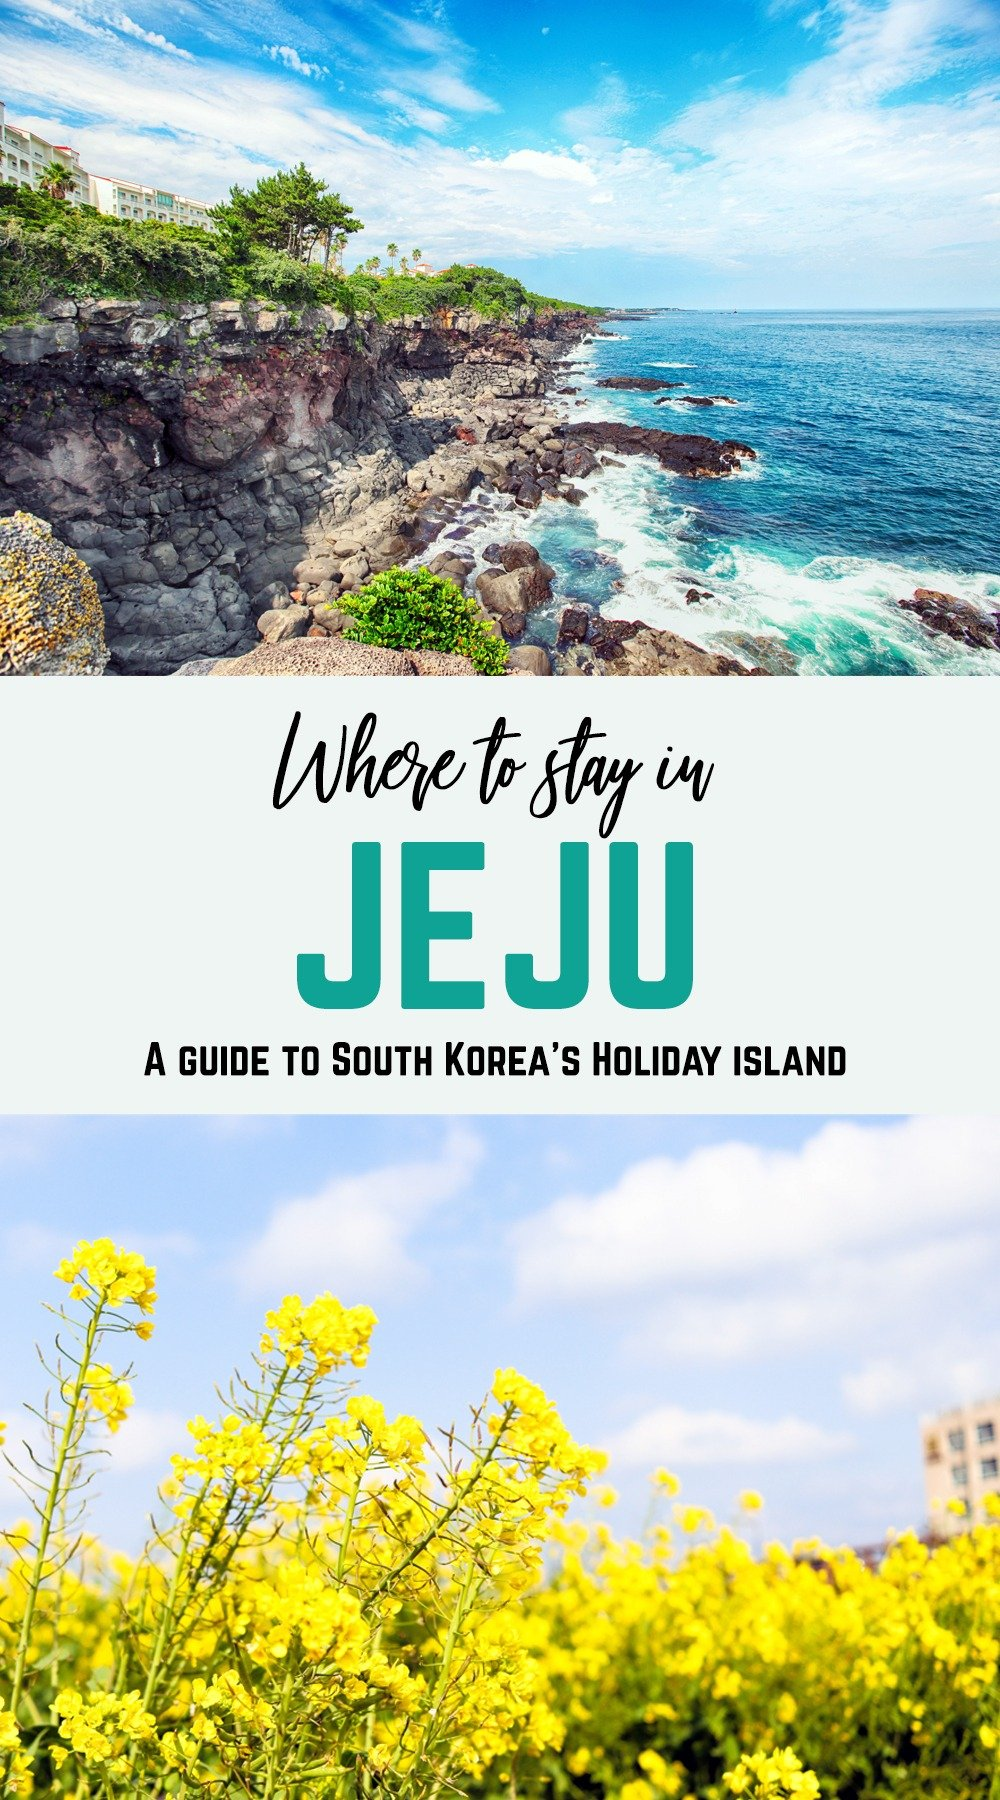 "Jeju Island is one of South Korea's best summer destinations. With beautiful beaches, stunning natural landscapes, and all kinds of quirky sights, there's so much to see and do in this ""island of the gods."" Plan your trip and get ready for an exciting holiday – here's where to stay in Jeju."